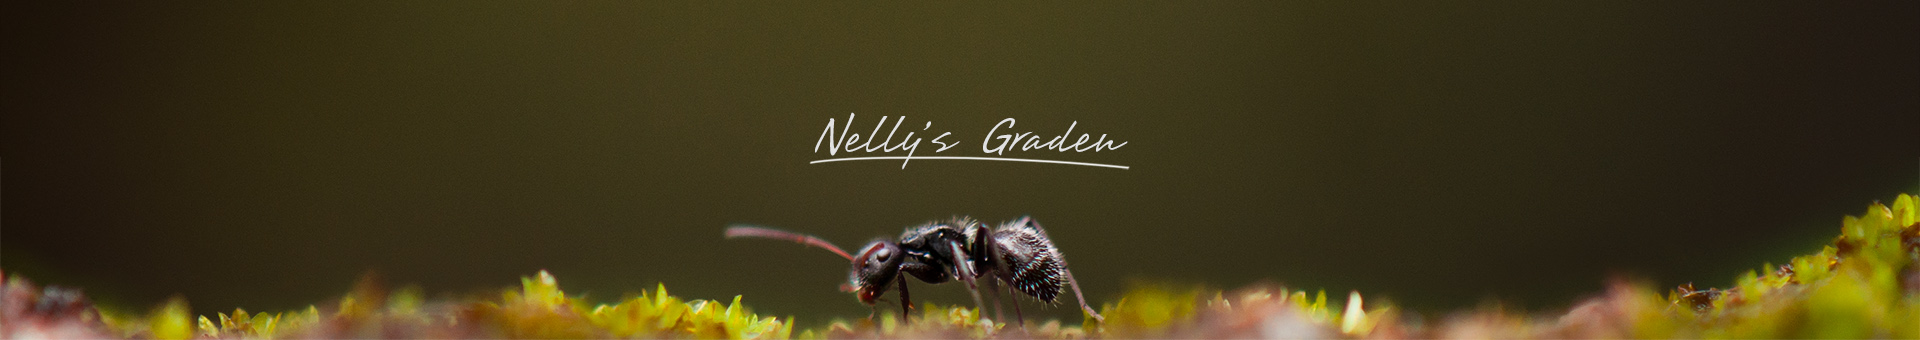 HEADER NELLY GARDEN 1